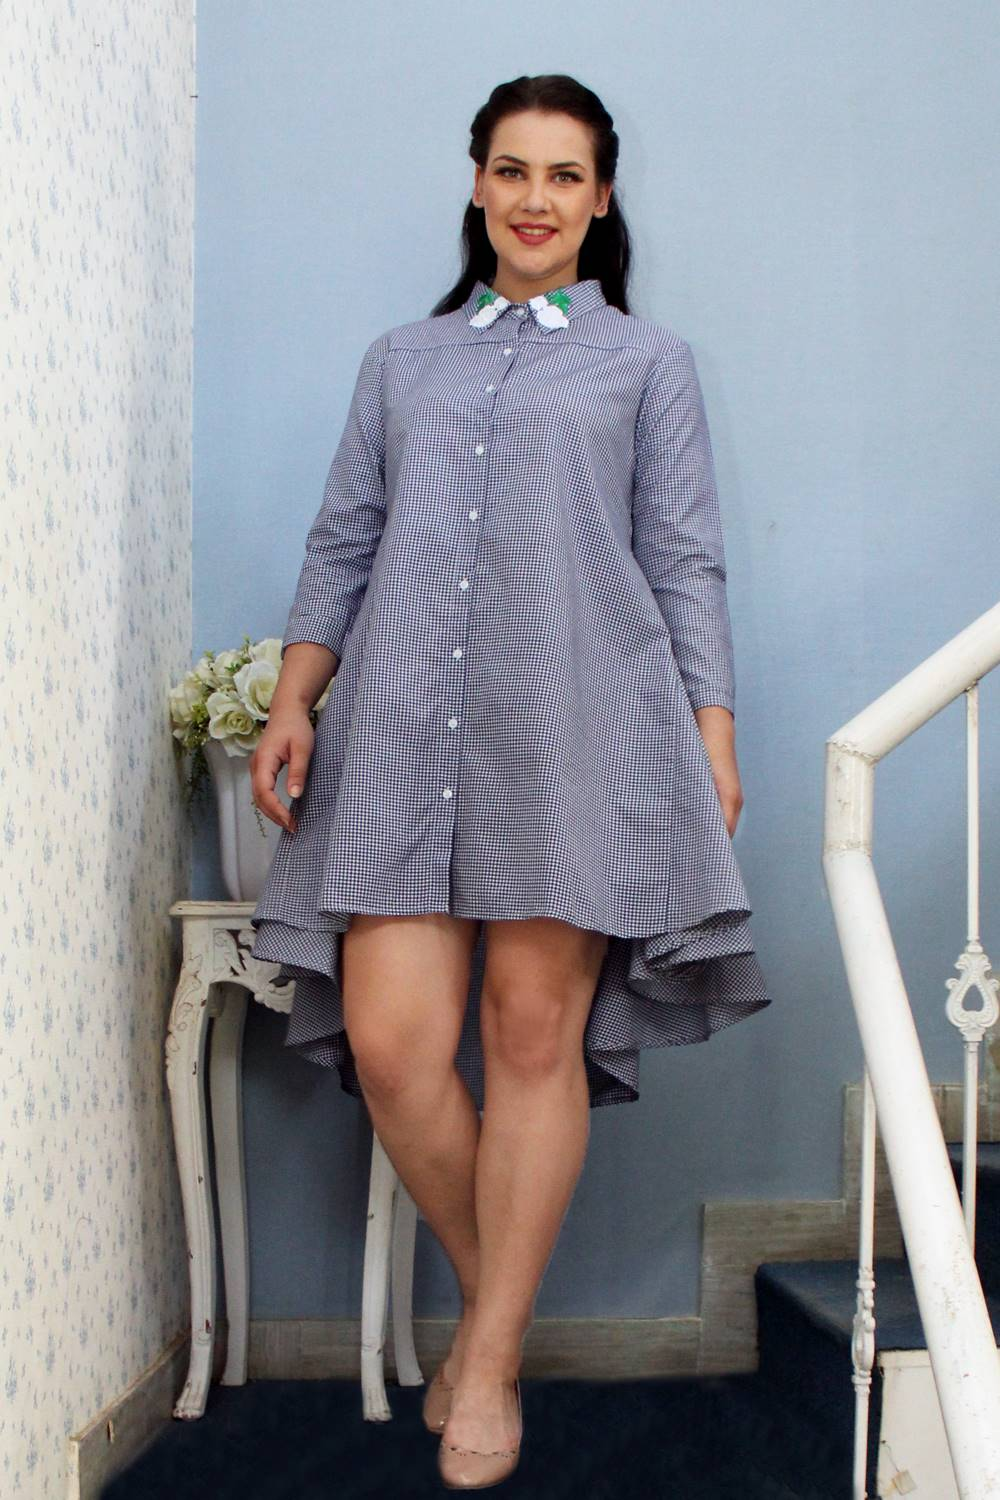 plus_size_gingham_patched_checks_shirt_dress_lastinch_western_clothing_brand